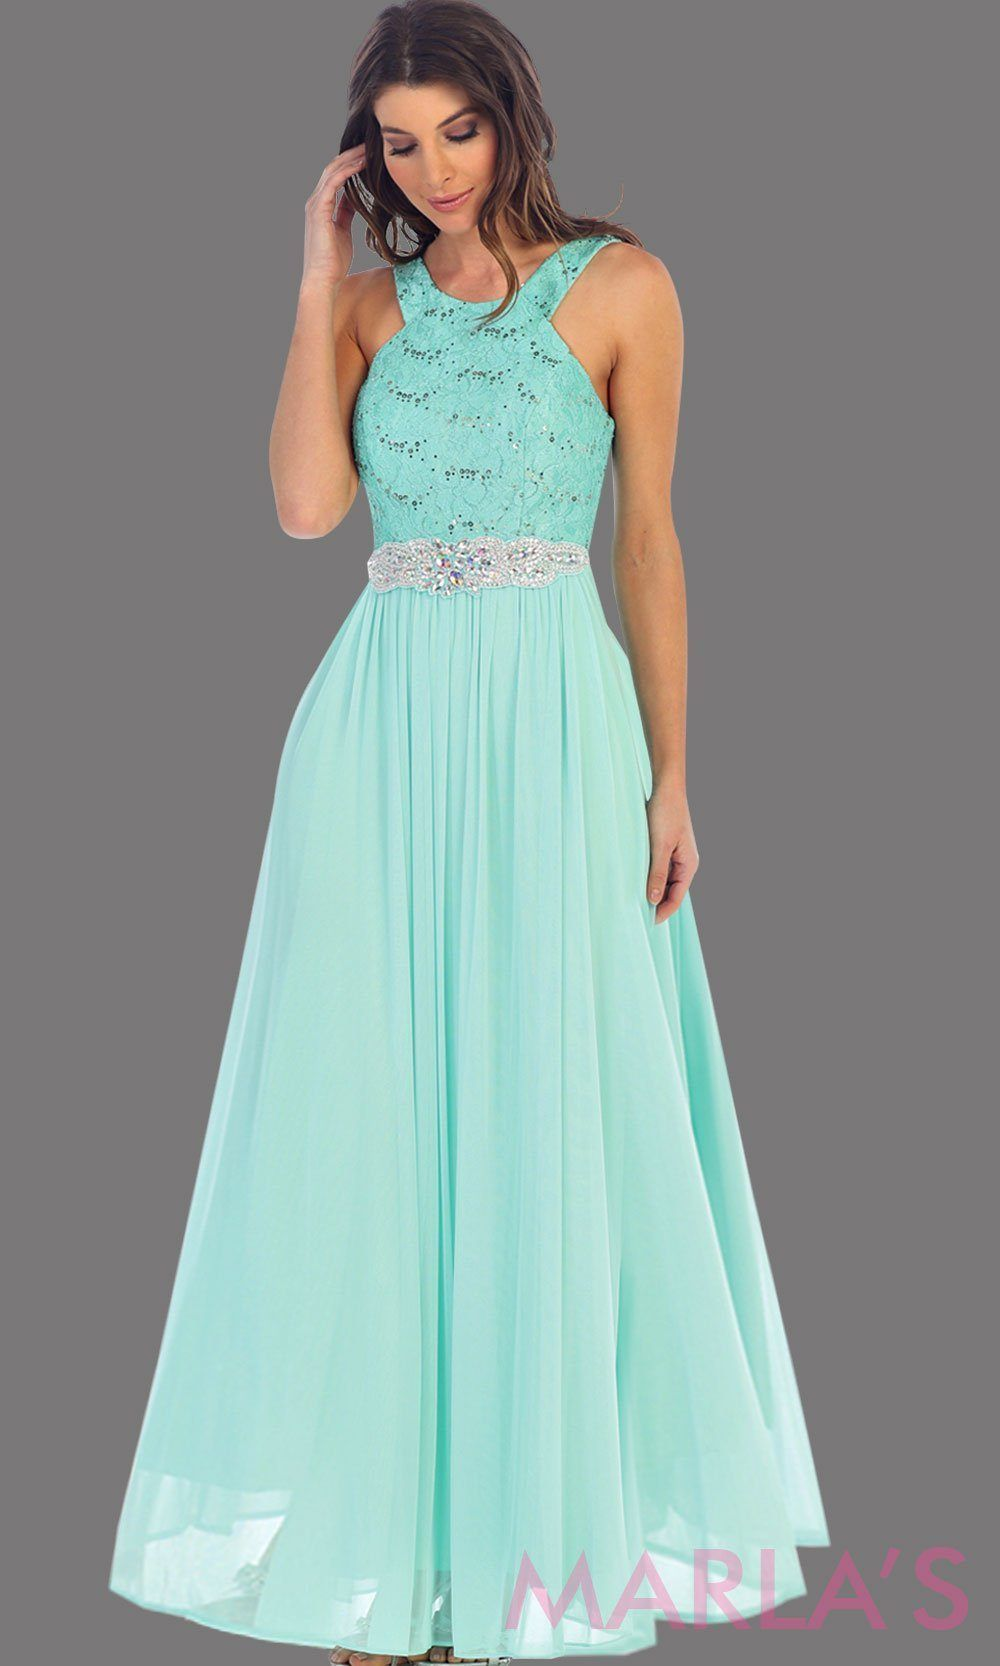 61ac9b494b5 Long high neck mint flowy party dress. The high neck is lace and flows into